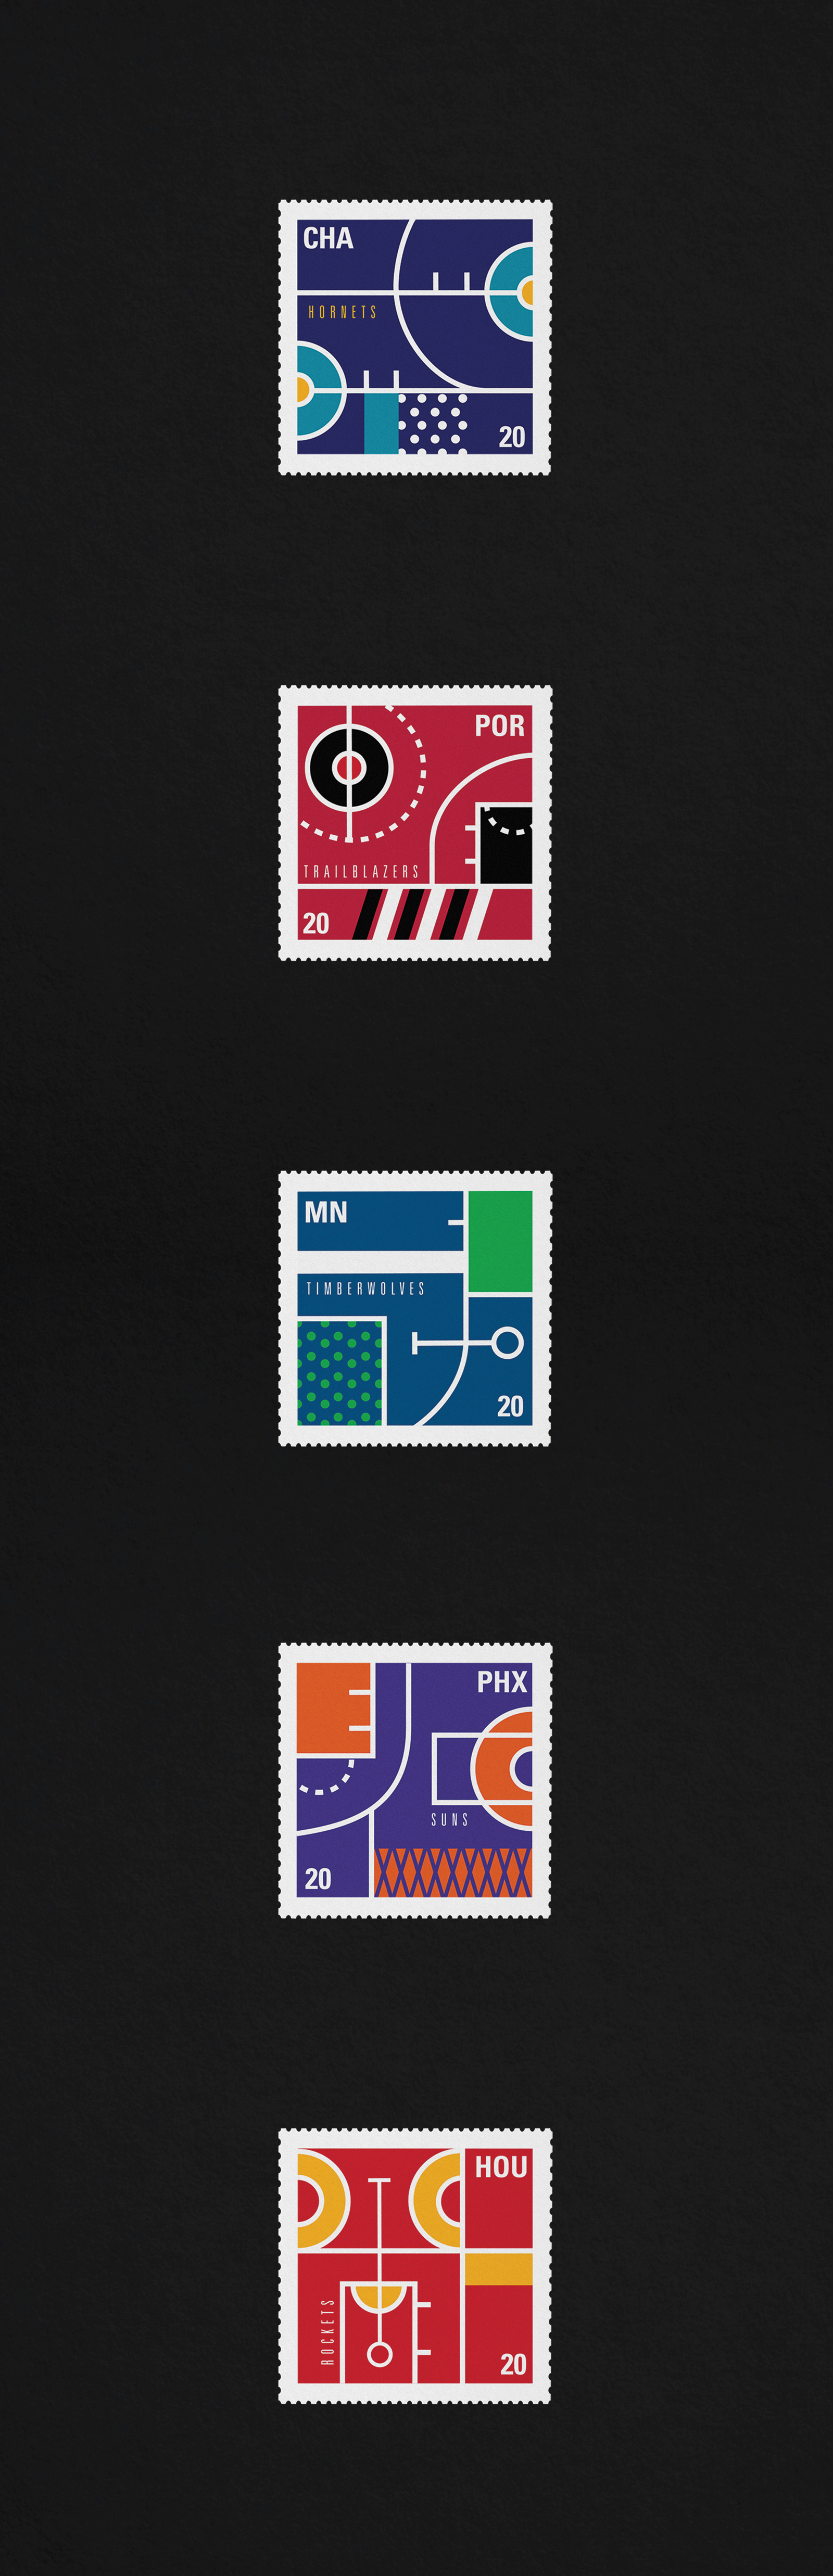 large-stamps55.jpg